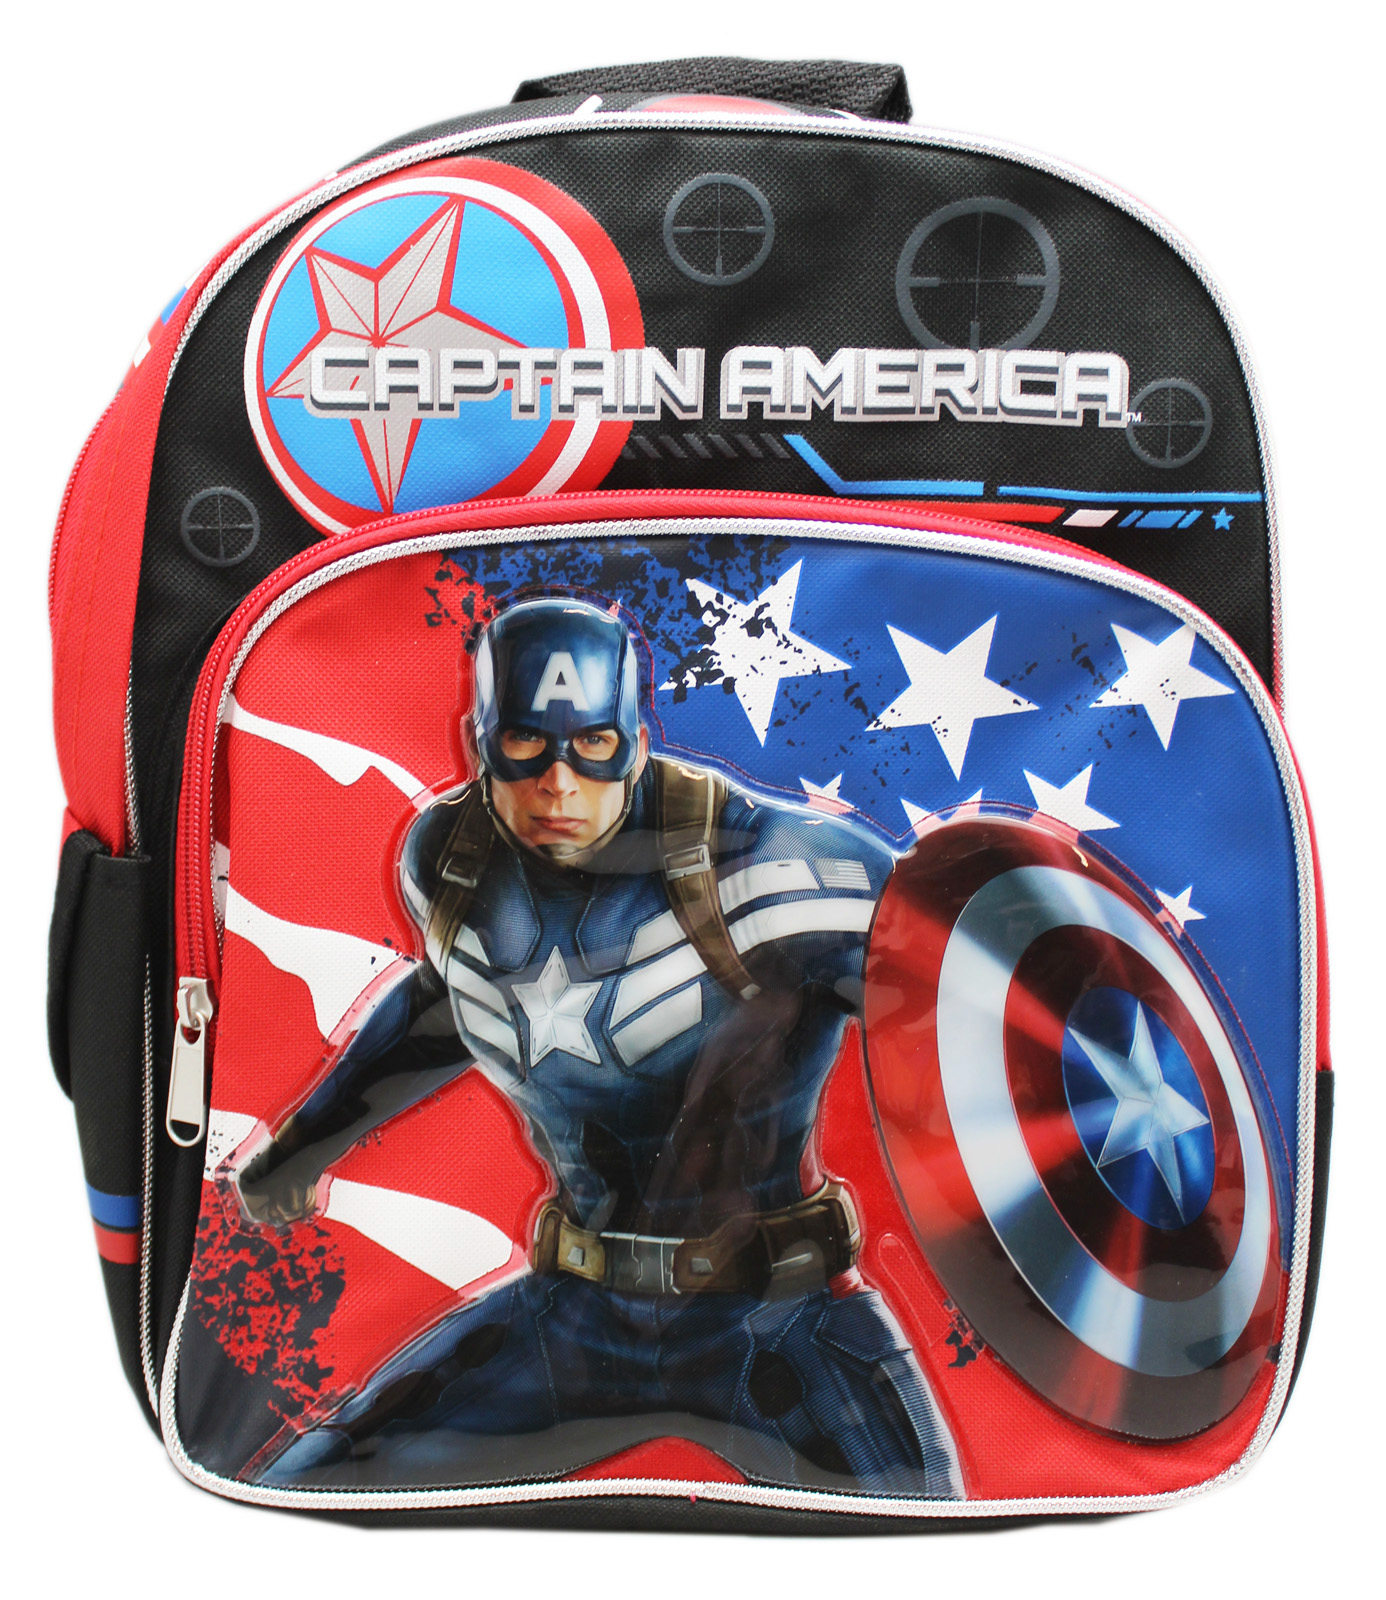 Captain America: The Winter Soldier Stars and Striped Small Kids Backpack (12in) by